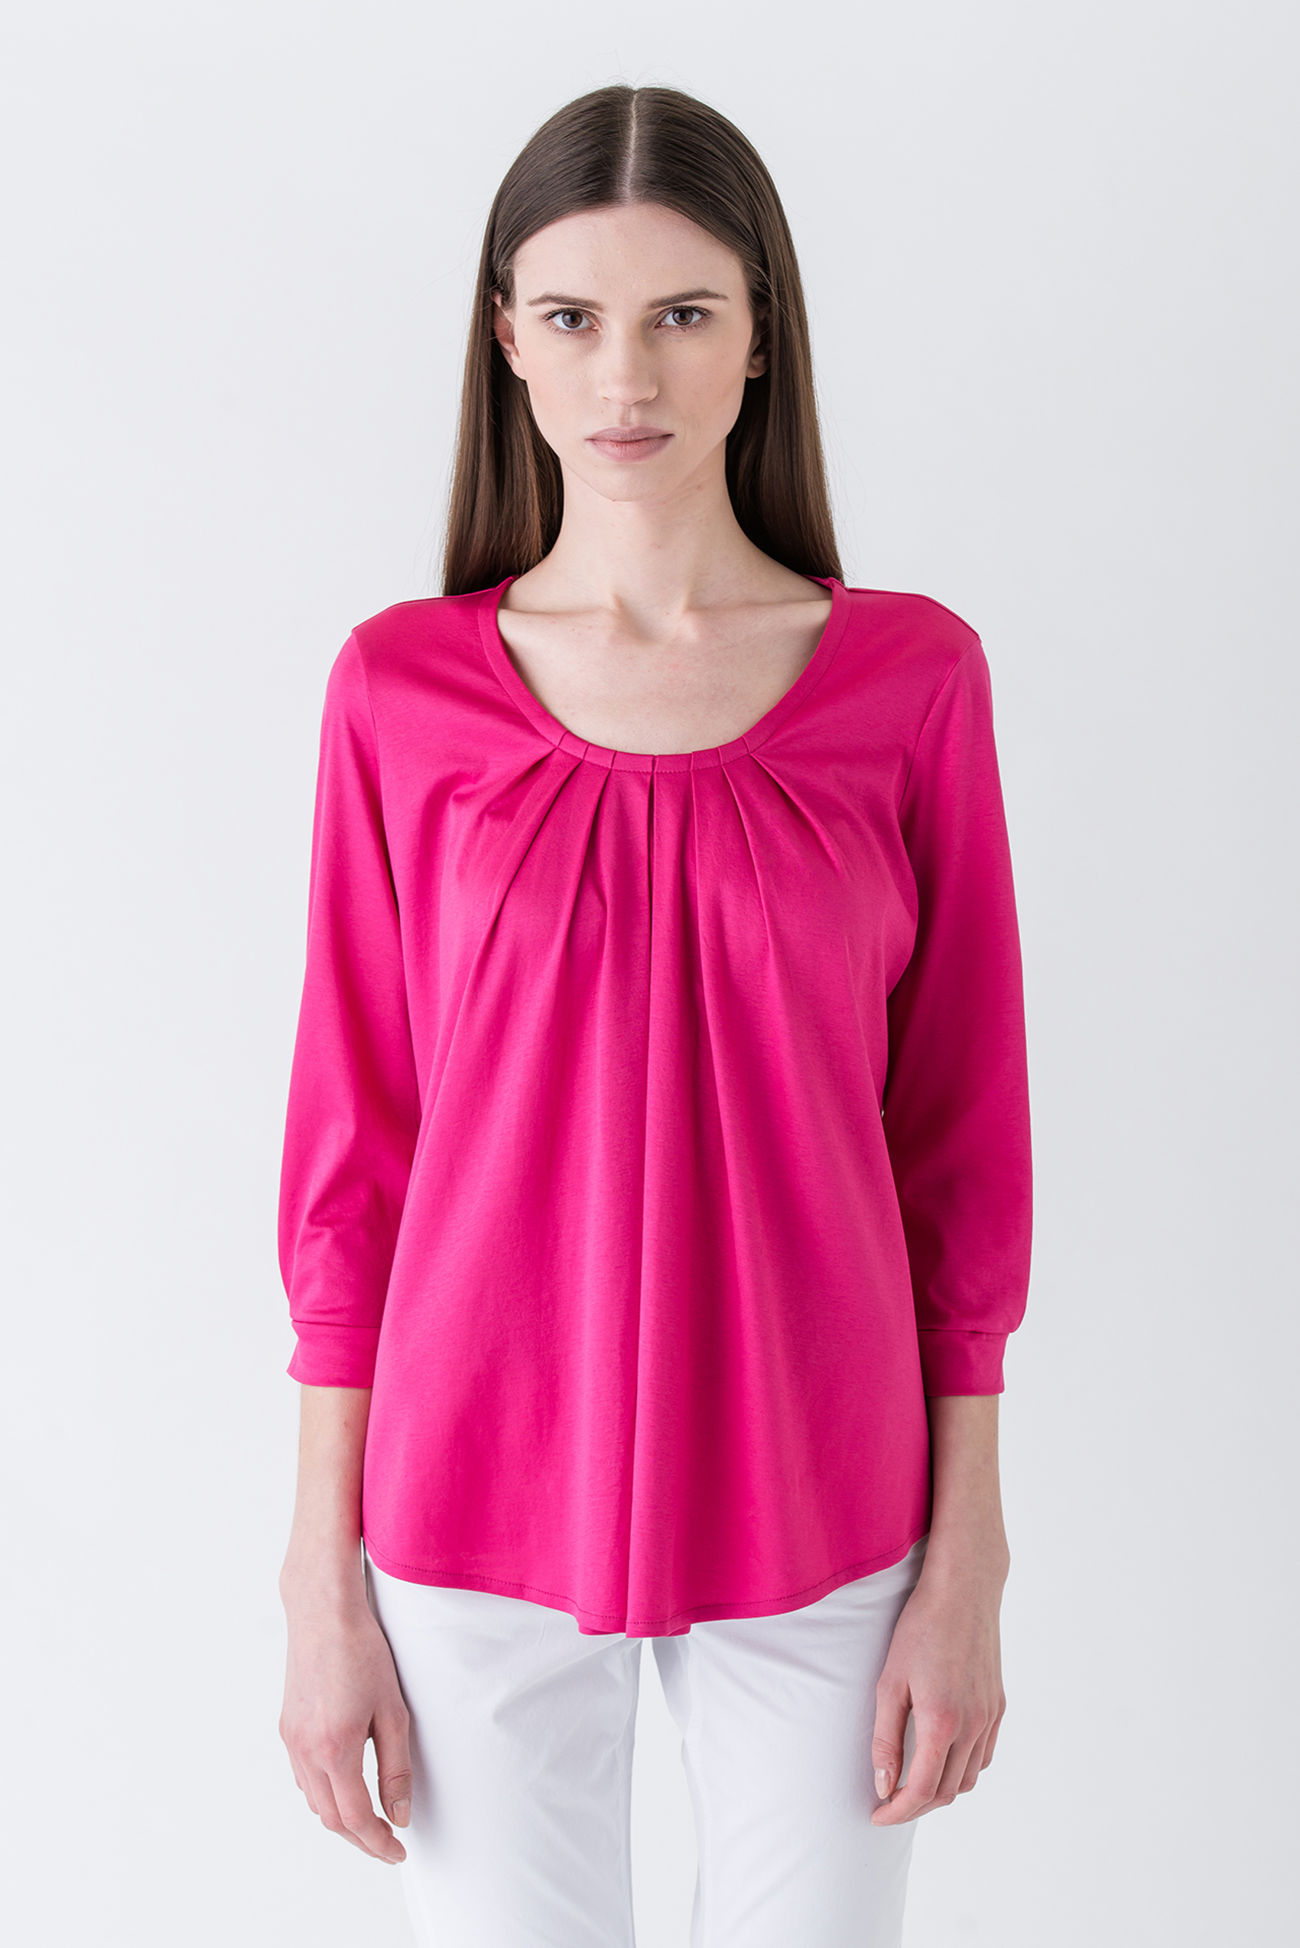 Very feminine long-sleeve shirt made of interlock jersey